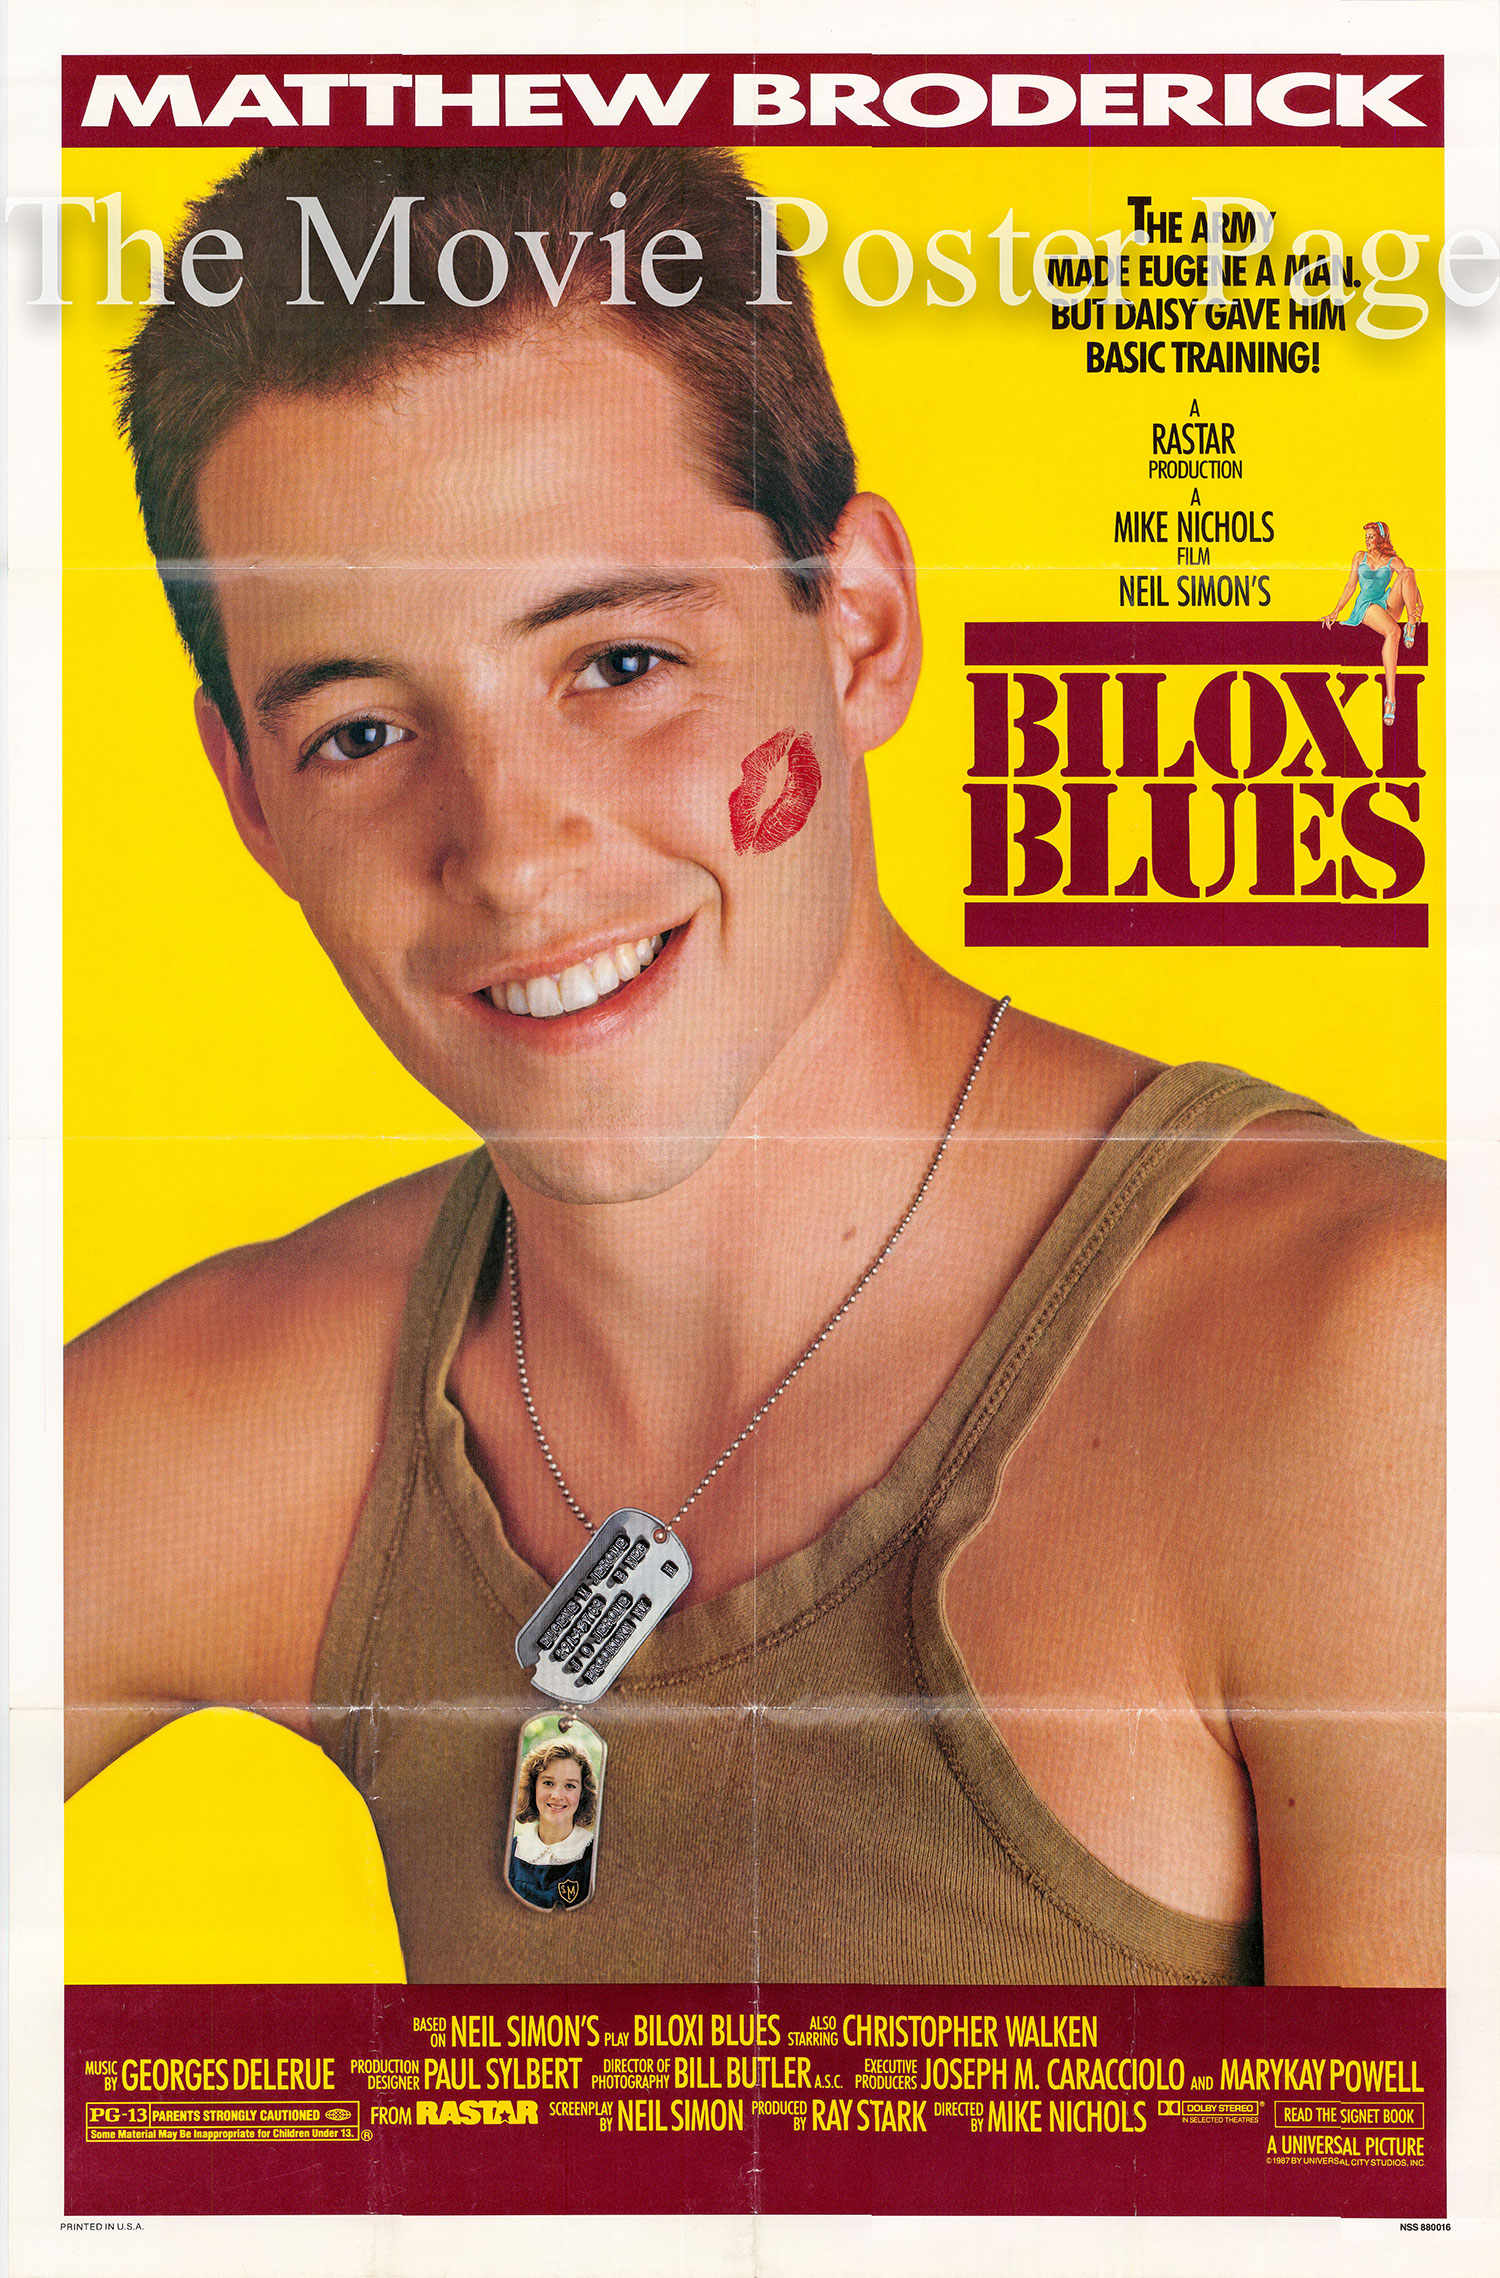 Pictured is a US one-sheet promotional poster for the 1988 Mike Nichols film Biloxi Blues starring Matthew Broderick.